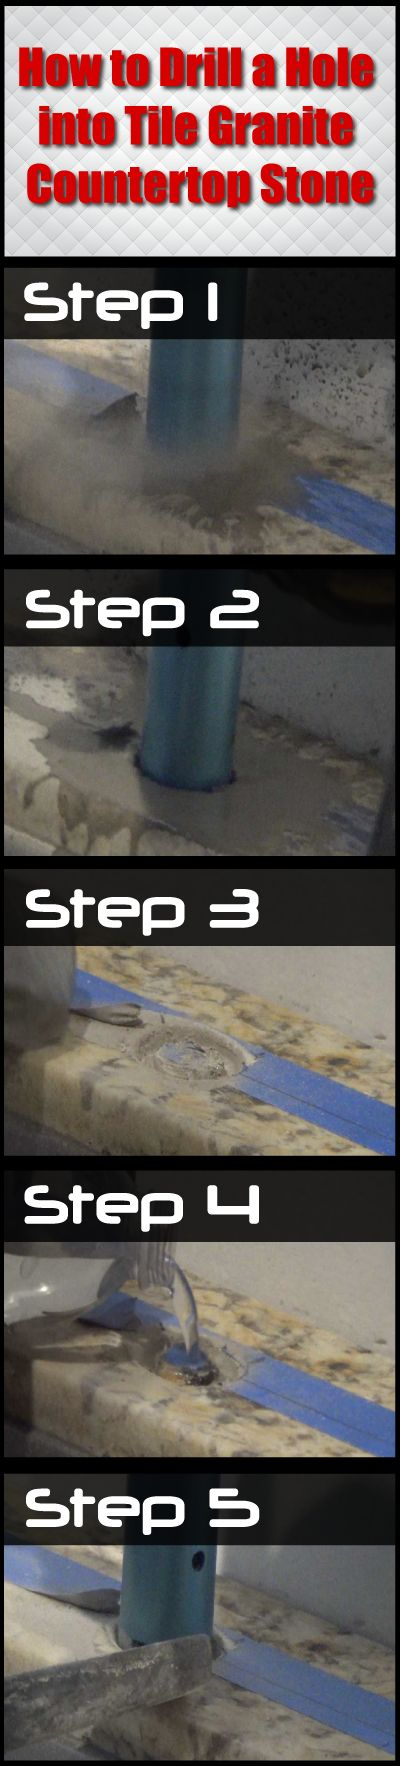 How To Drill A Hole Into Tile Granite Countertop Stone A